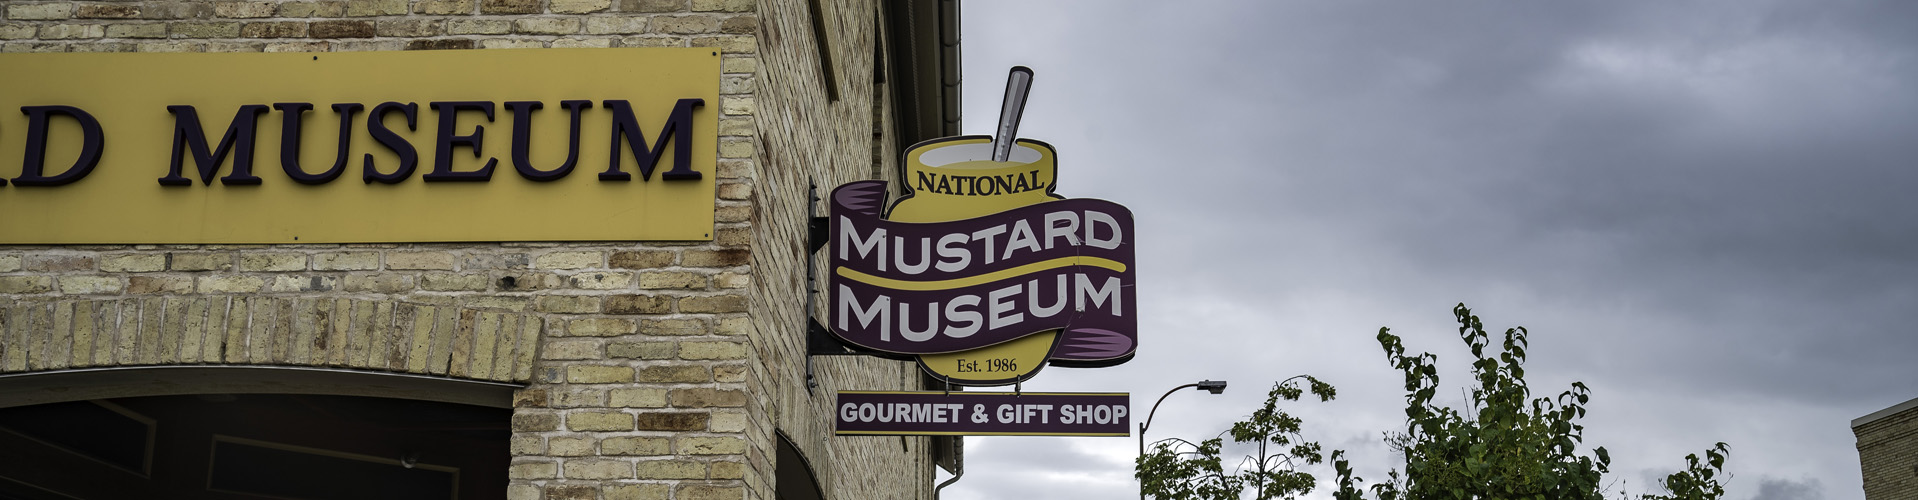 The Mustard Museum in Middleton, Wisconsin.